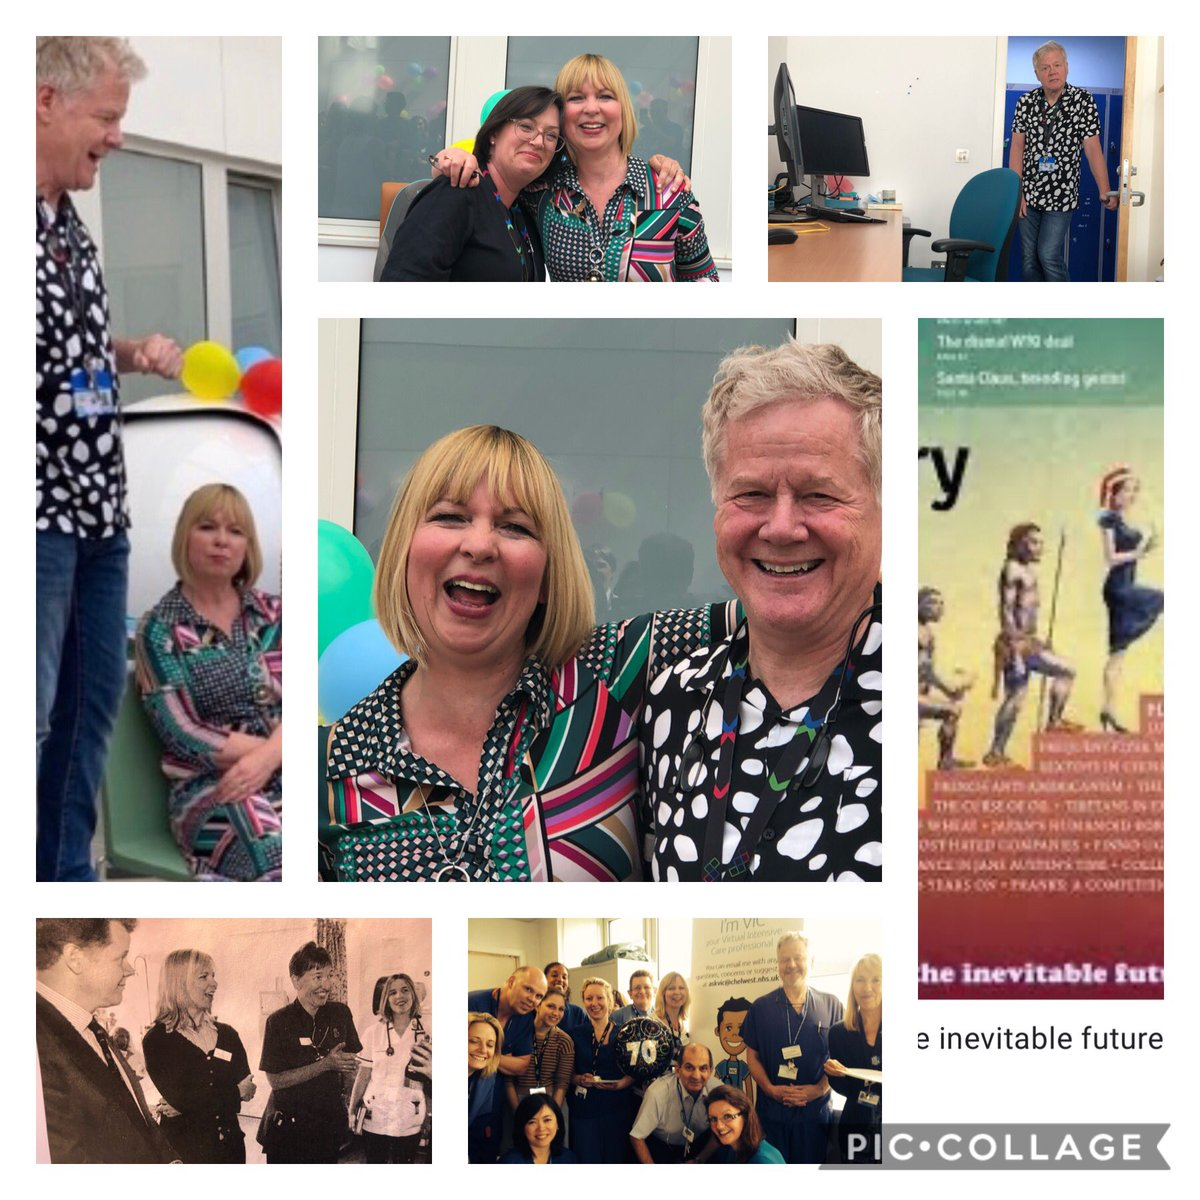 28 years of a matriarchy @chelwestICU reached an end @JaneMarieHamil1 😉 it is time to say goodbye but your memories will be kept in our memories for ever ! Now you are truly owner of your destiny . Thank you Jane Marie for such a fab work throughout the years 🏆🍀